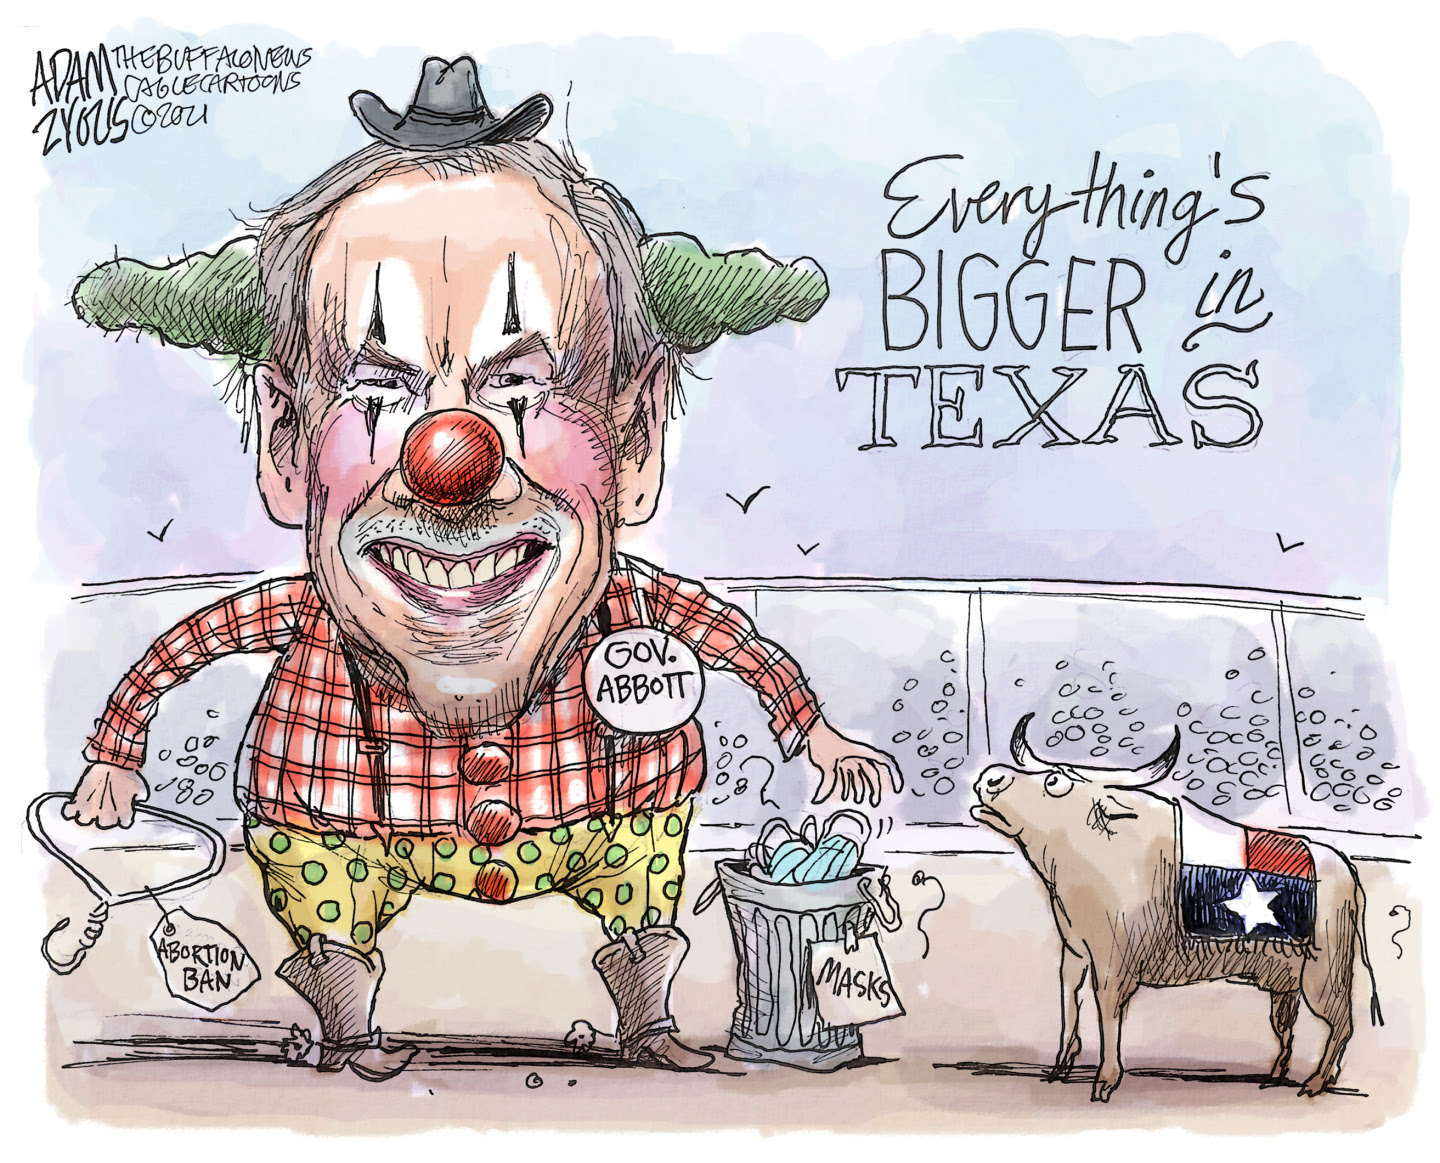 Greg Abbott is a Texas sized clown ignoring COVID dangers while banning abortions and pushing voter suppression